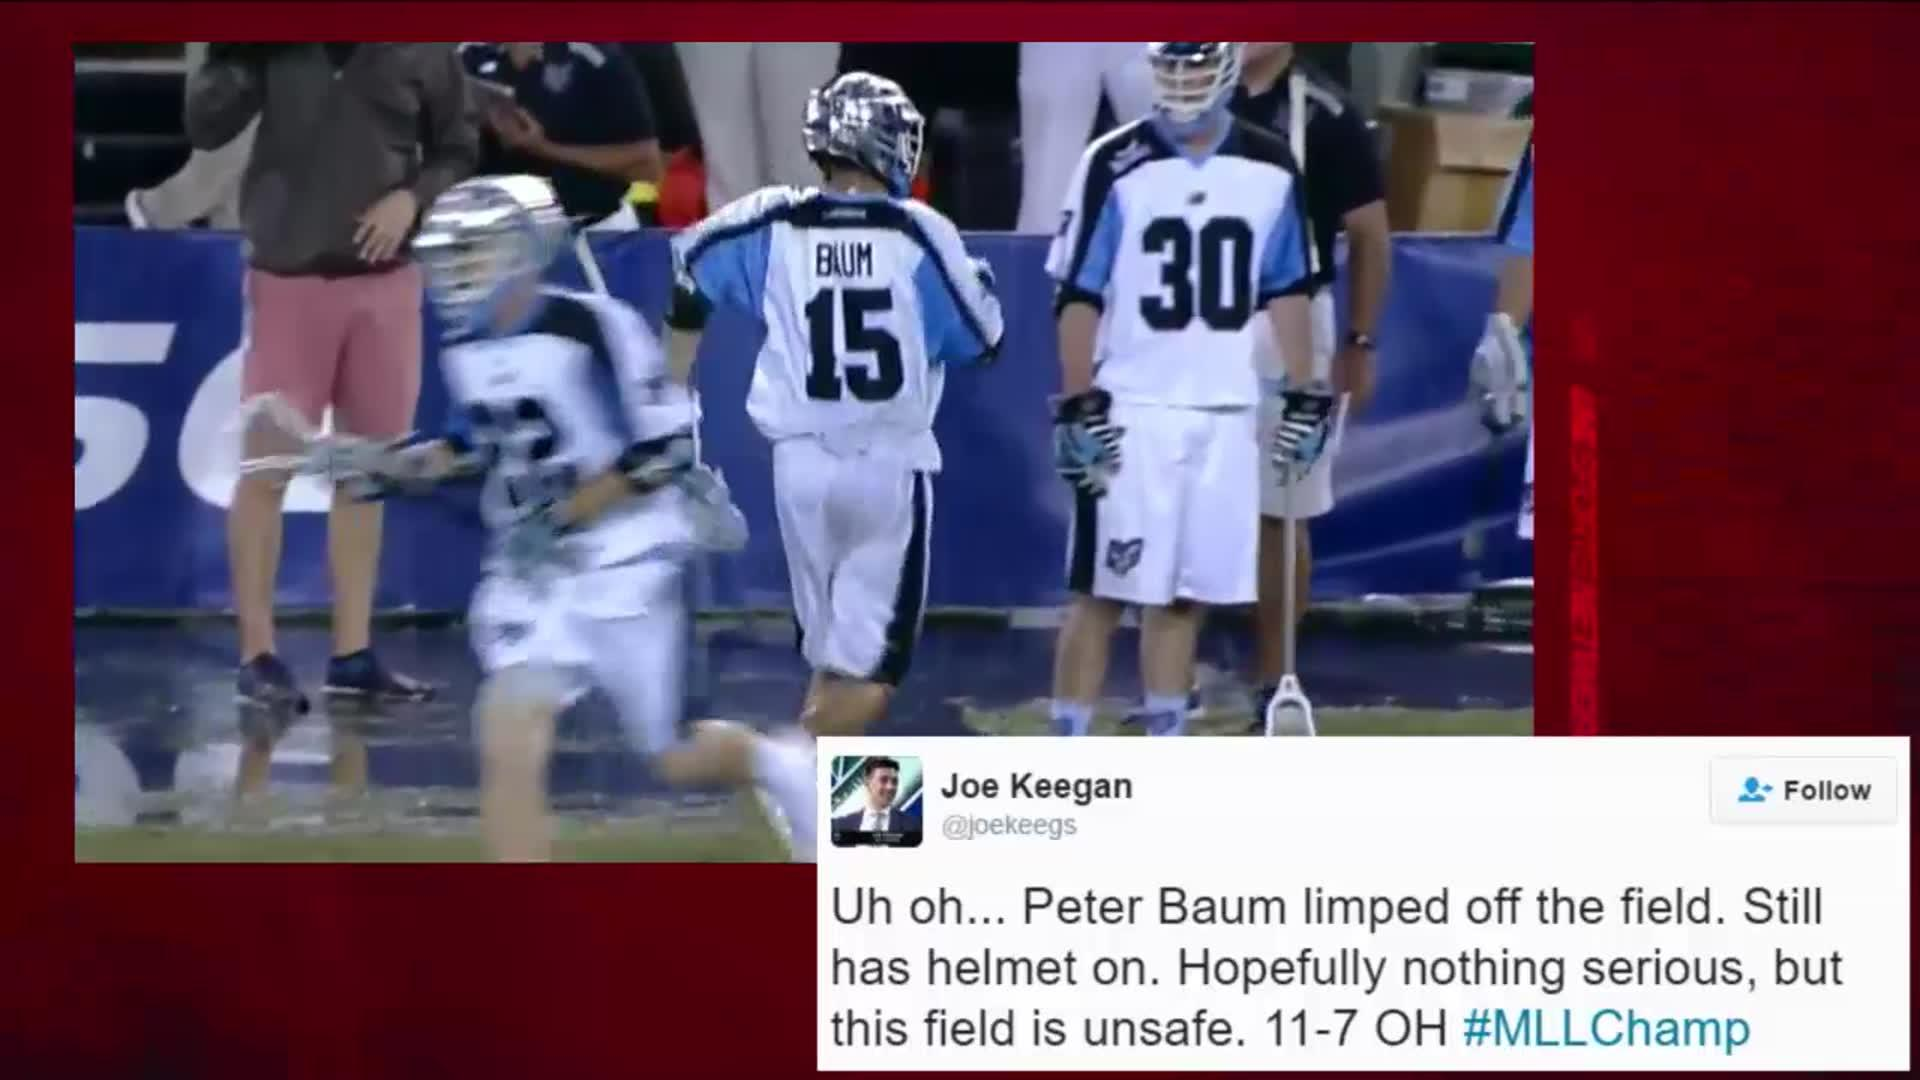 Social Media Reactions to the MLL Championship